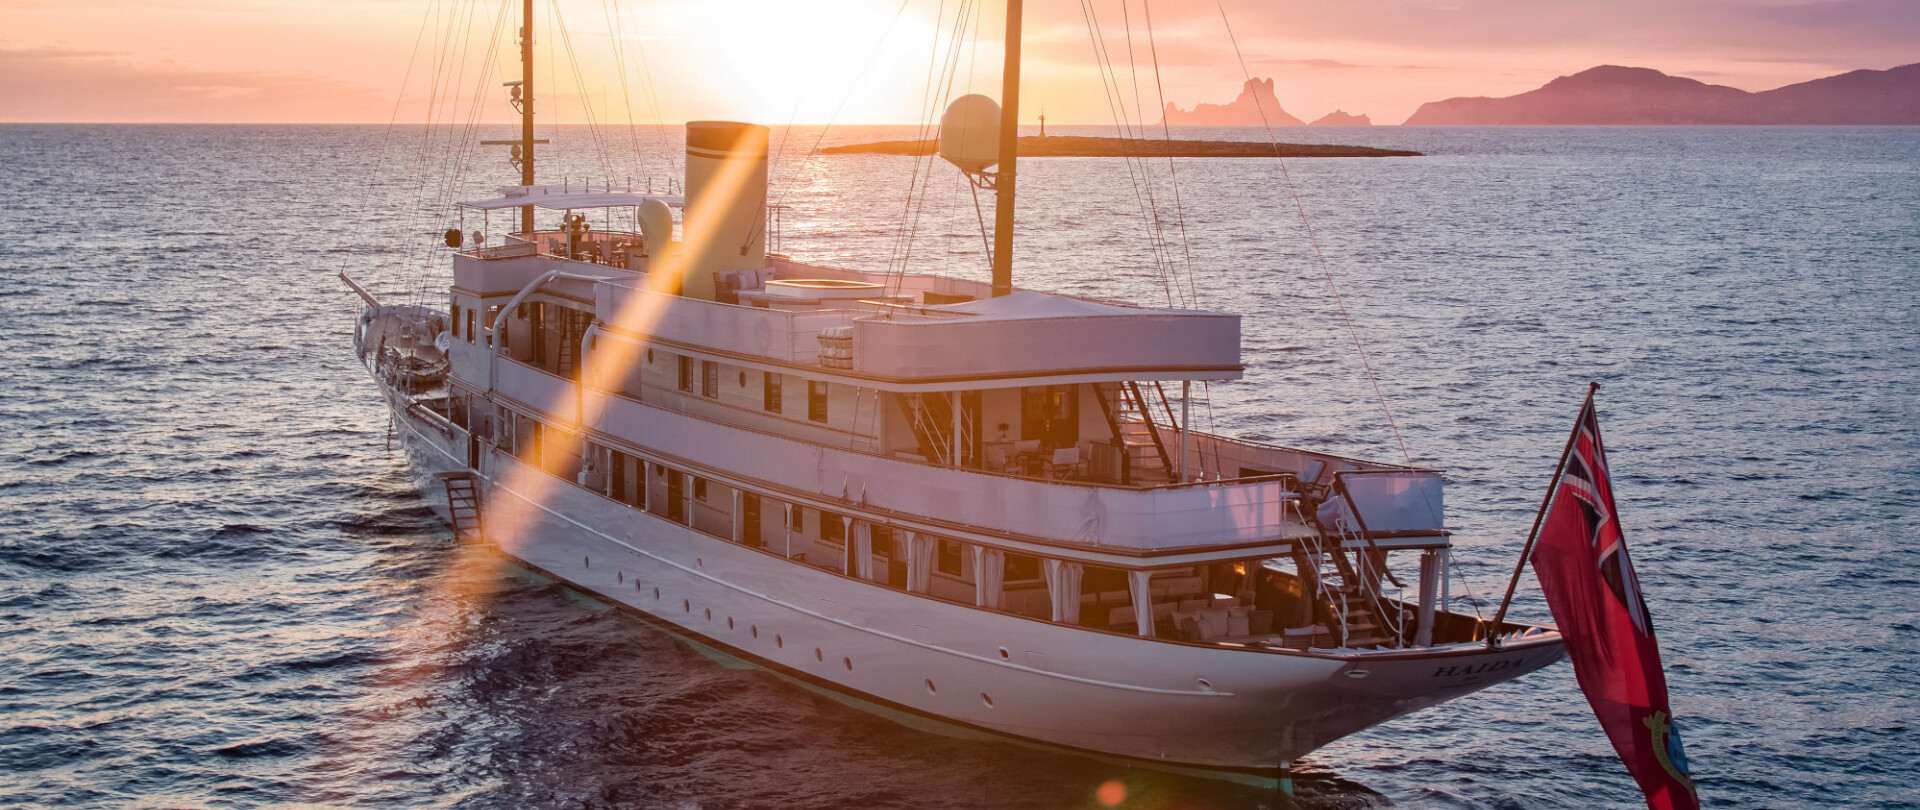 Haida 1929, now available in Greece with a special deal photo 1